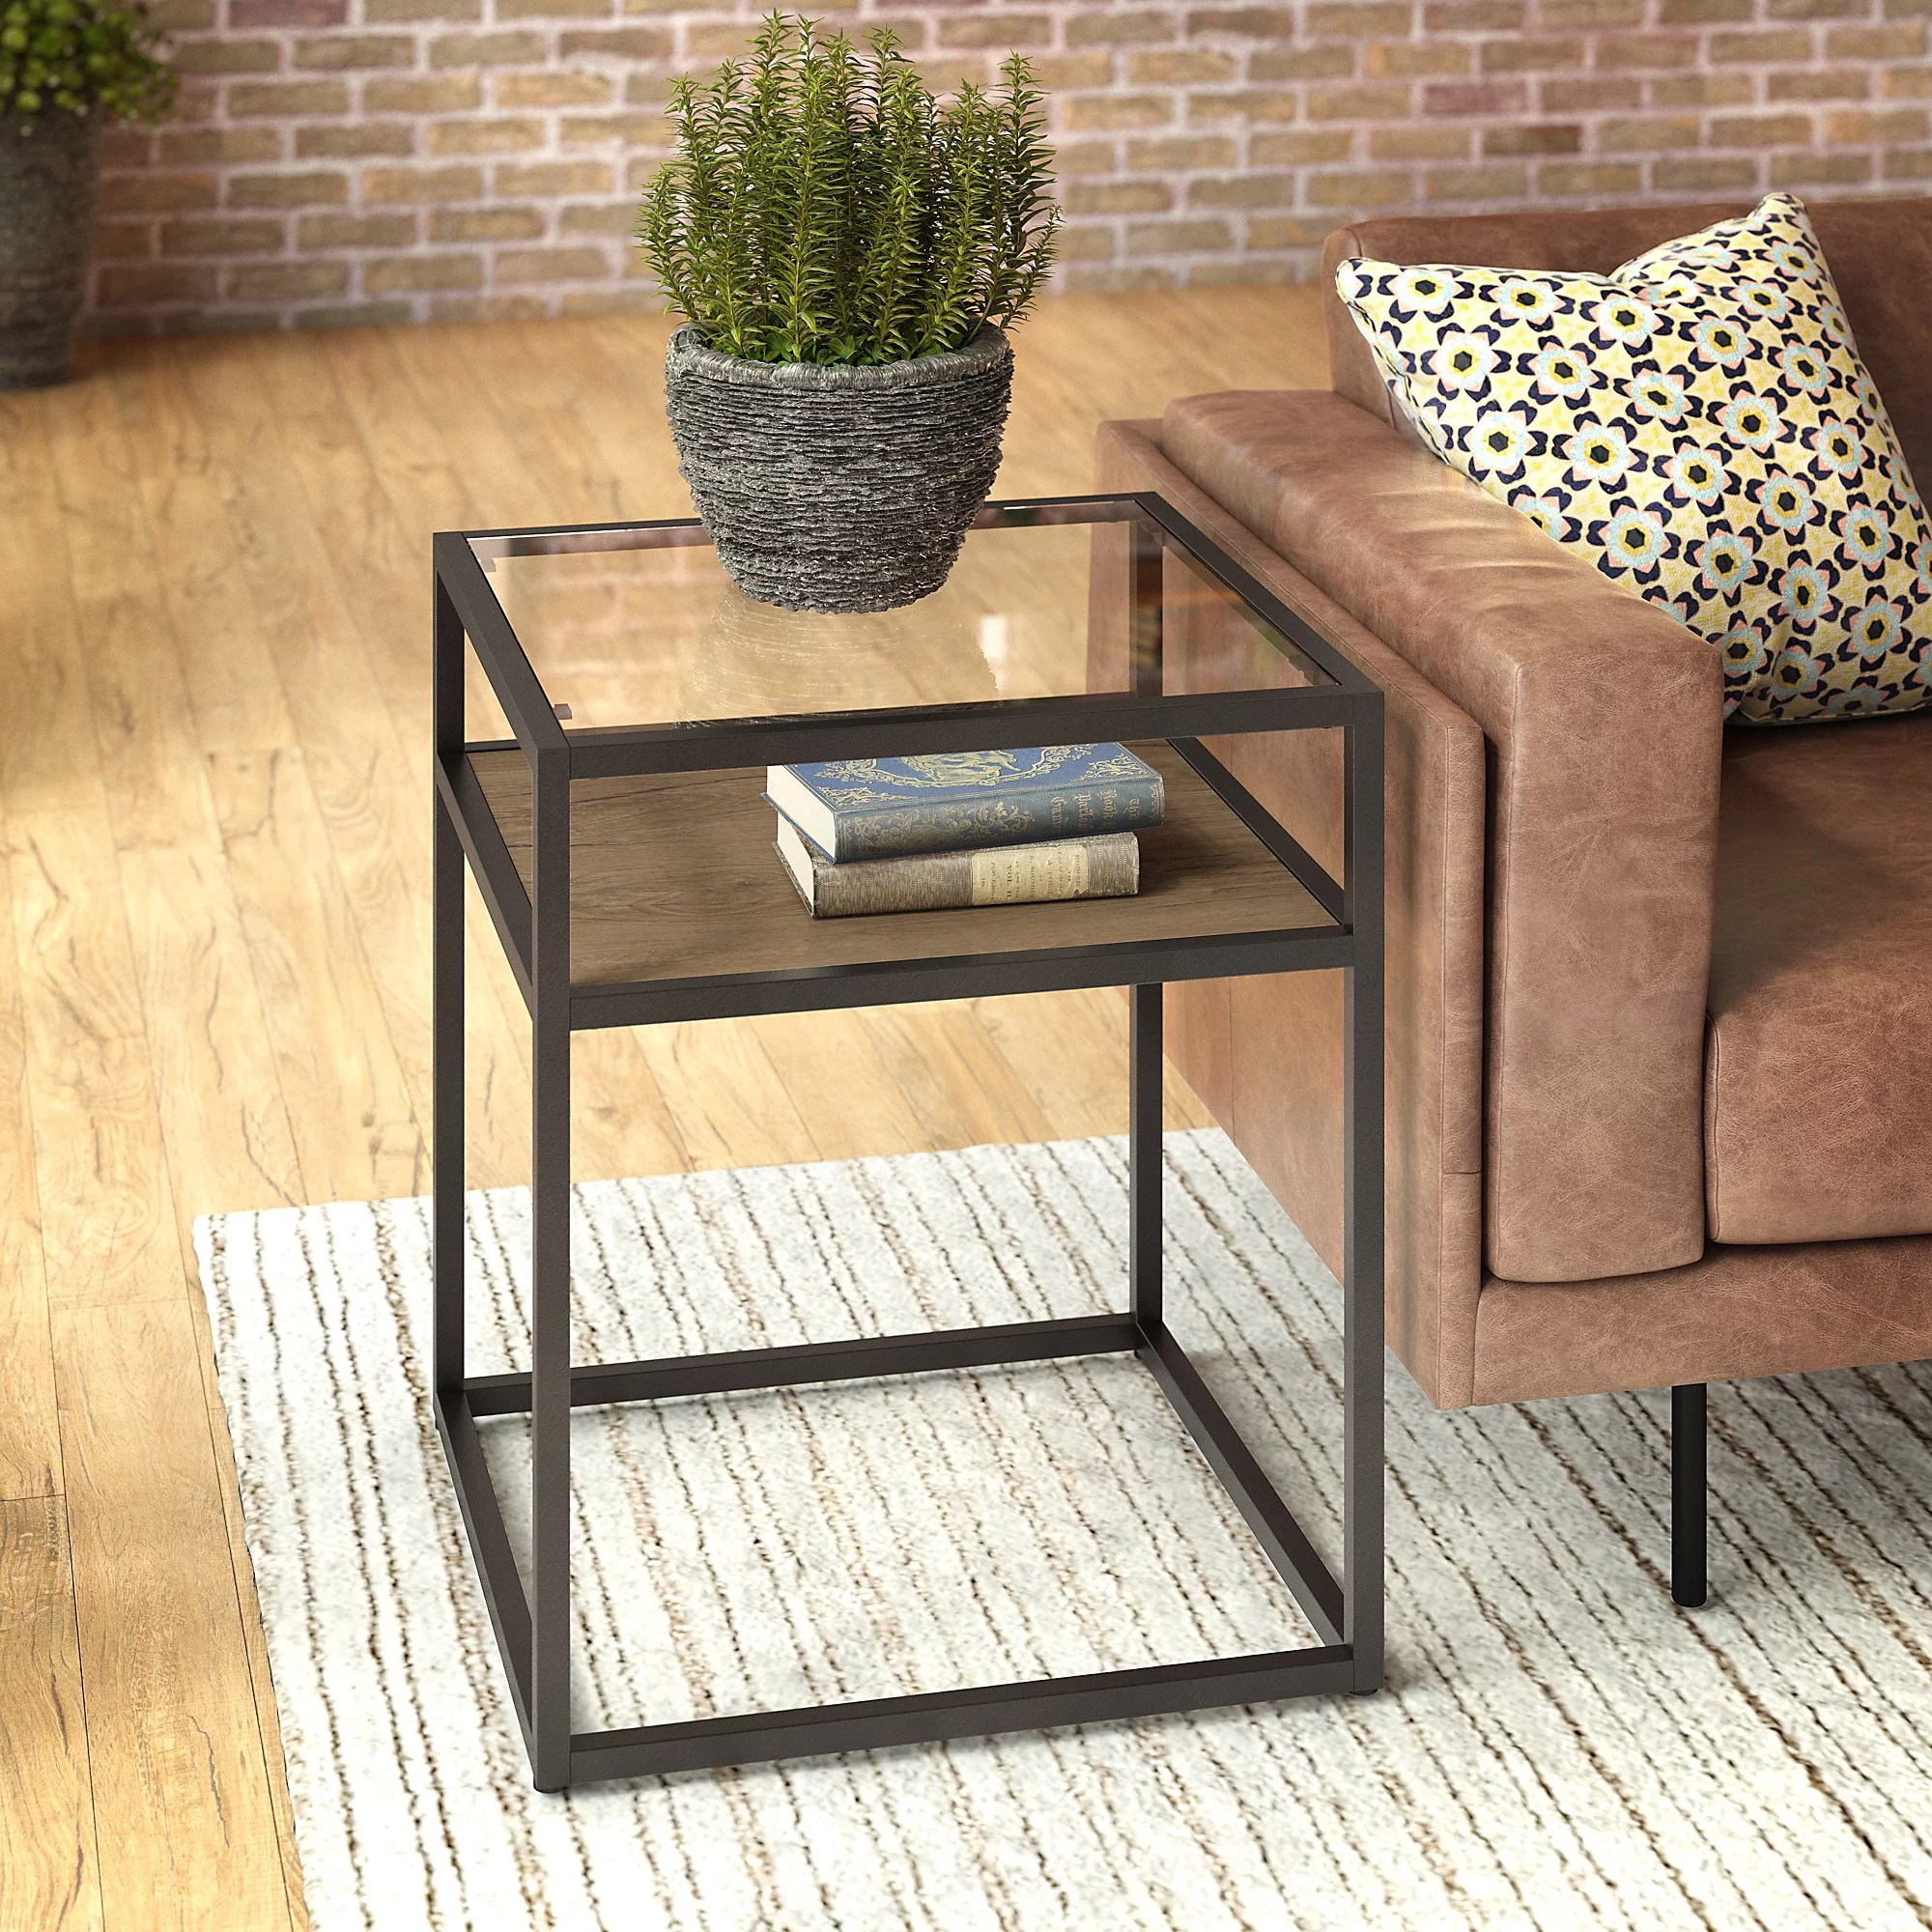 bush furniture anthropology glass top end table in rustic brown embossed